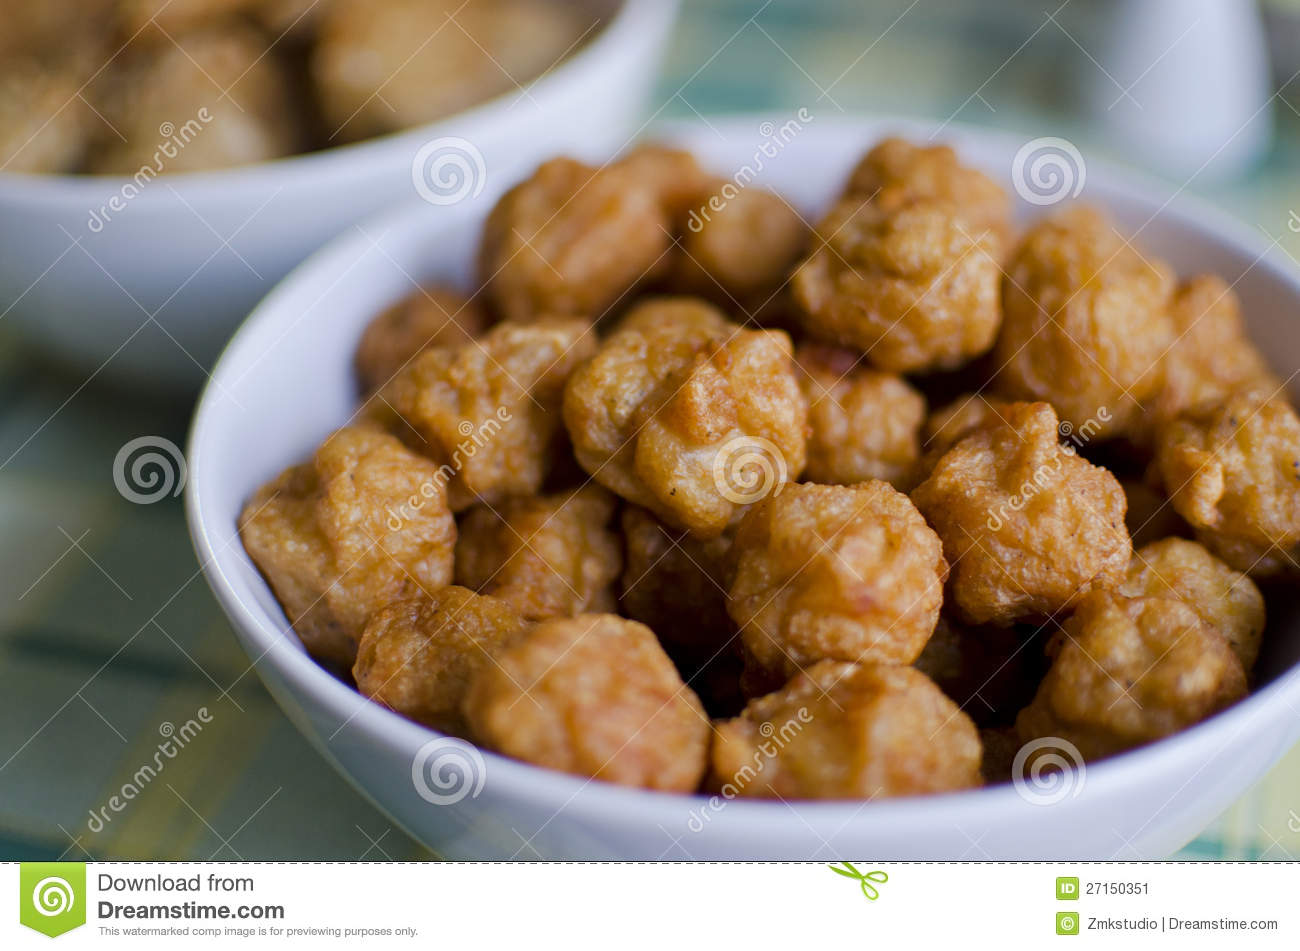 Fried fish and shrimp ball stock image image 27150351 for Fried fish and shrimp